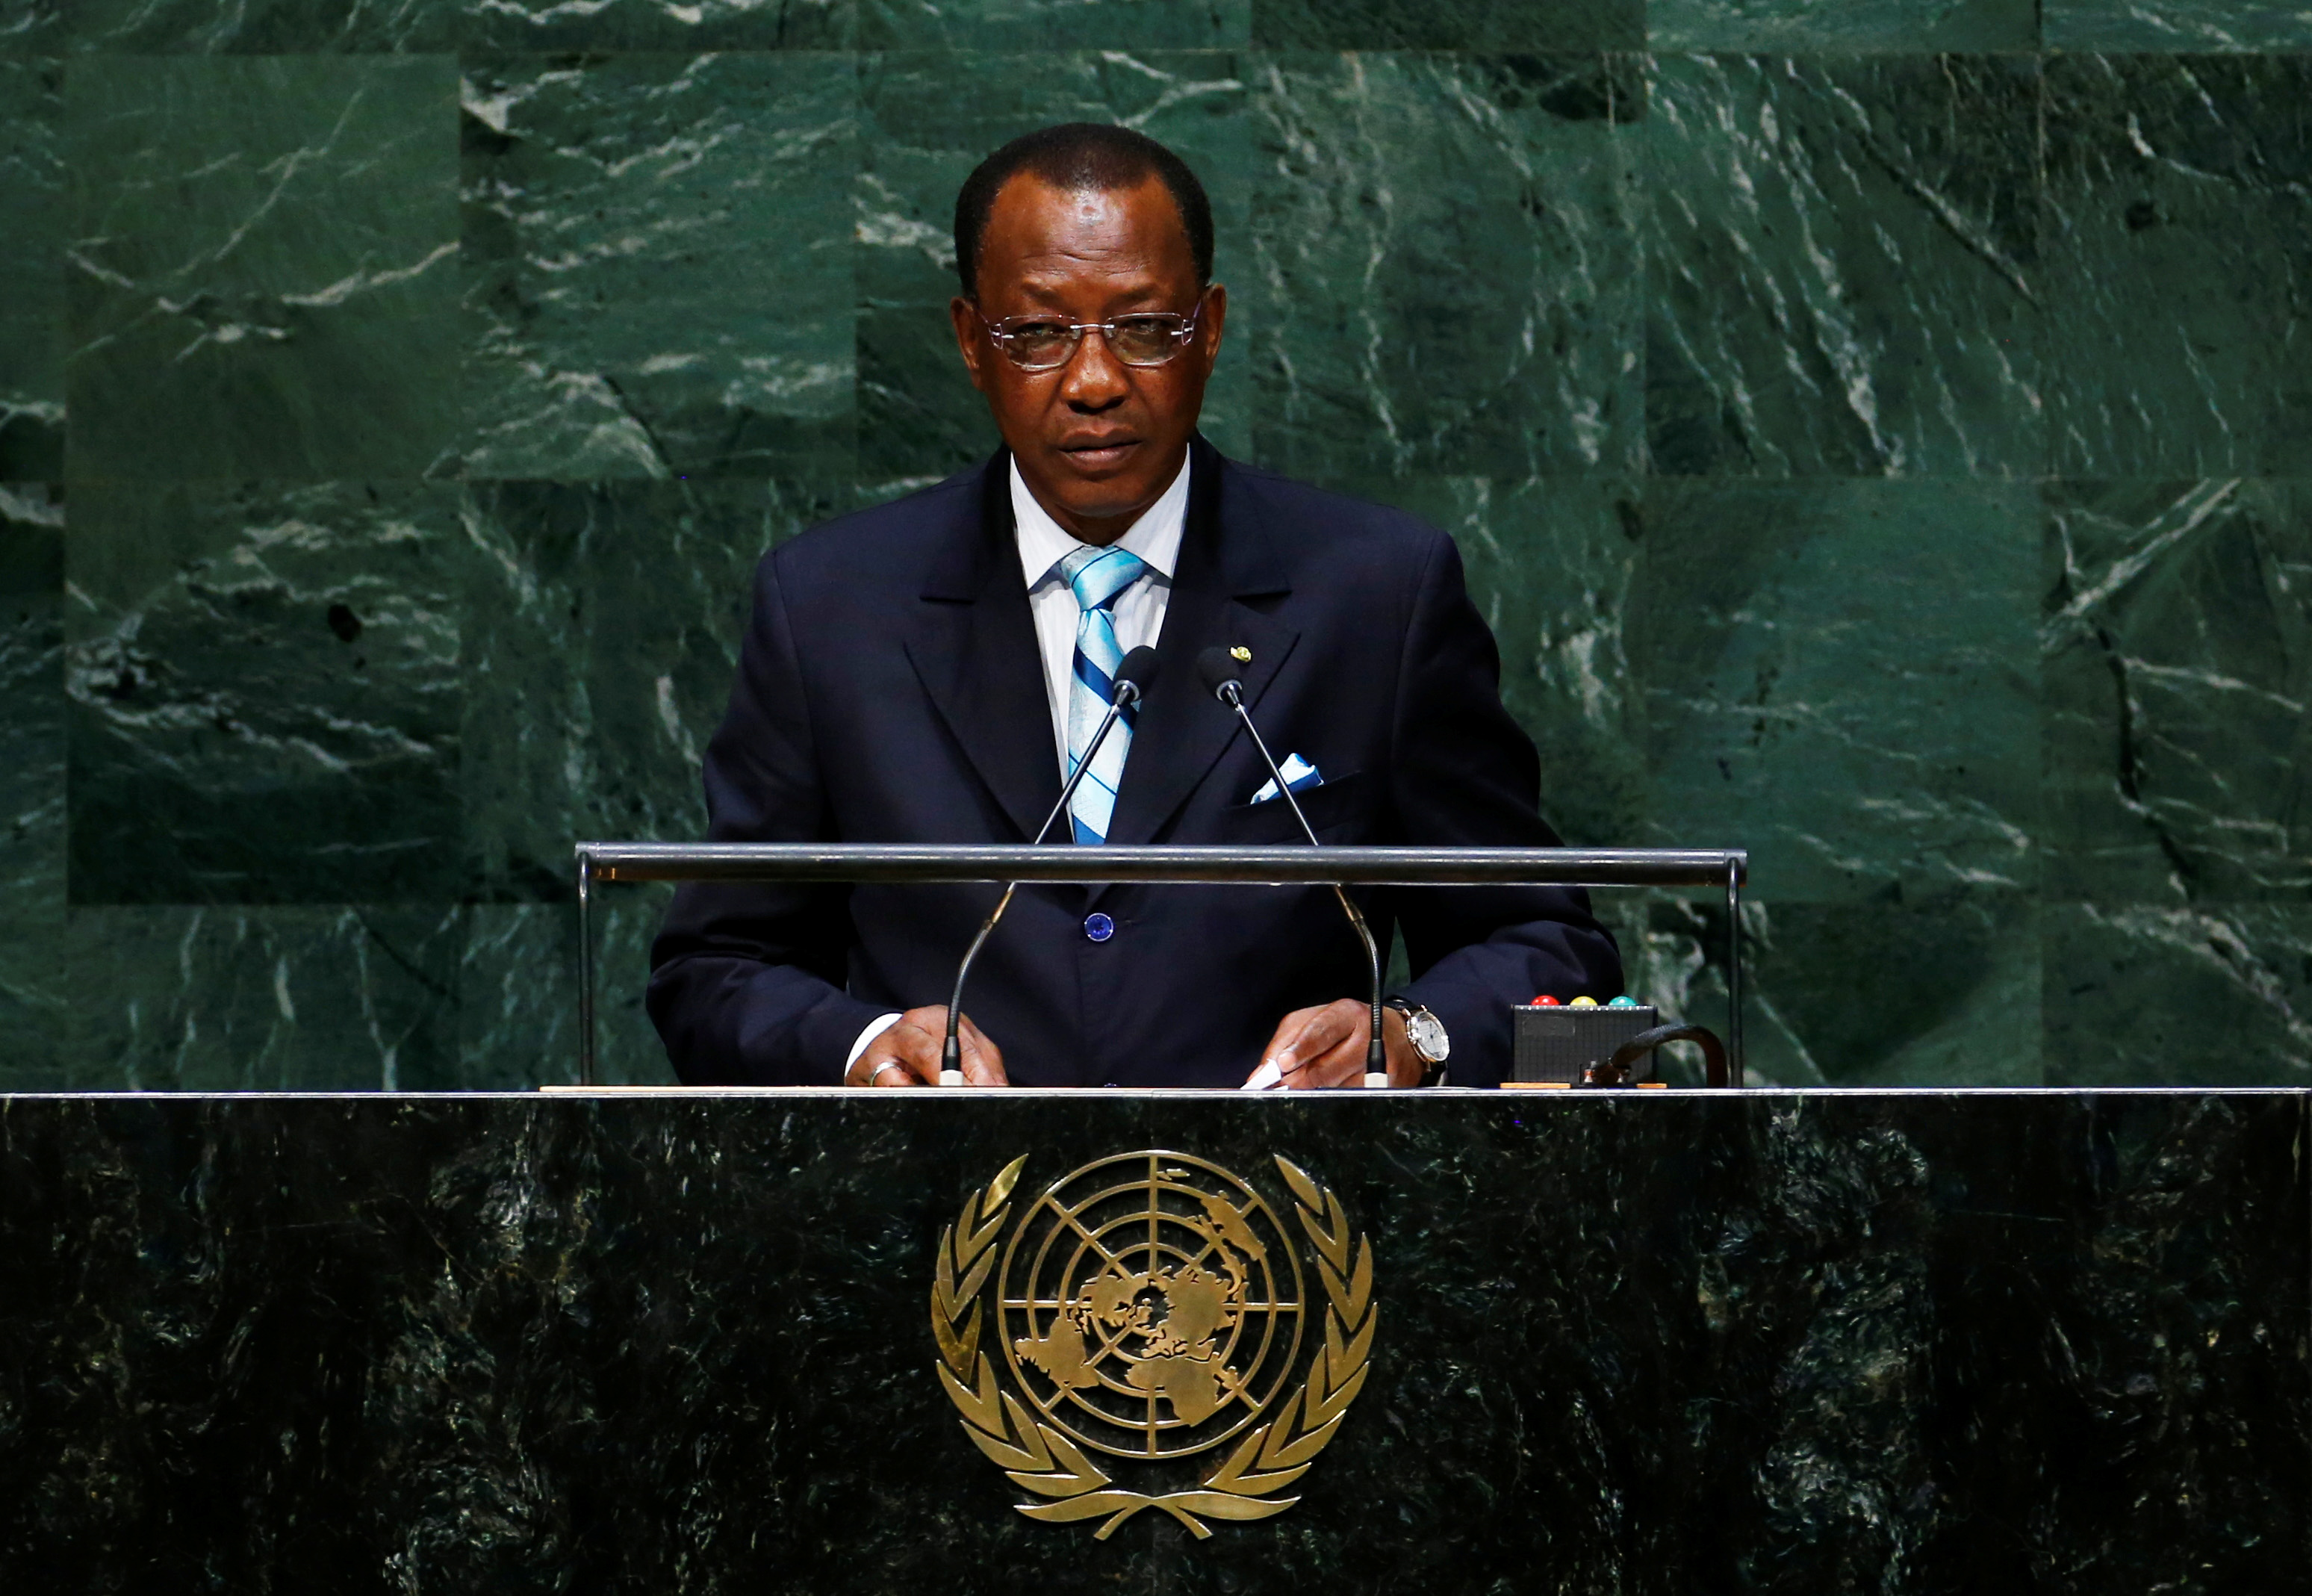 Idriss Deby Itno, President of the Republic of Chad, addresses the 69th United Nations General Assembly at the U.N. headquarters in New York September 24, 2014.               REUTERS/Lucas Jackson/File Photo